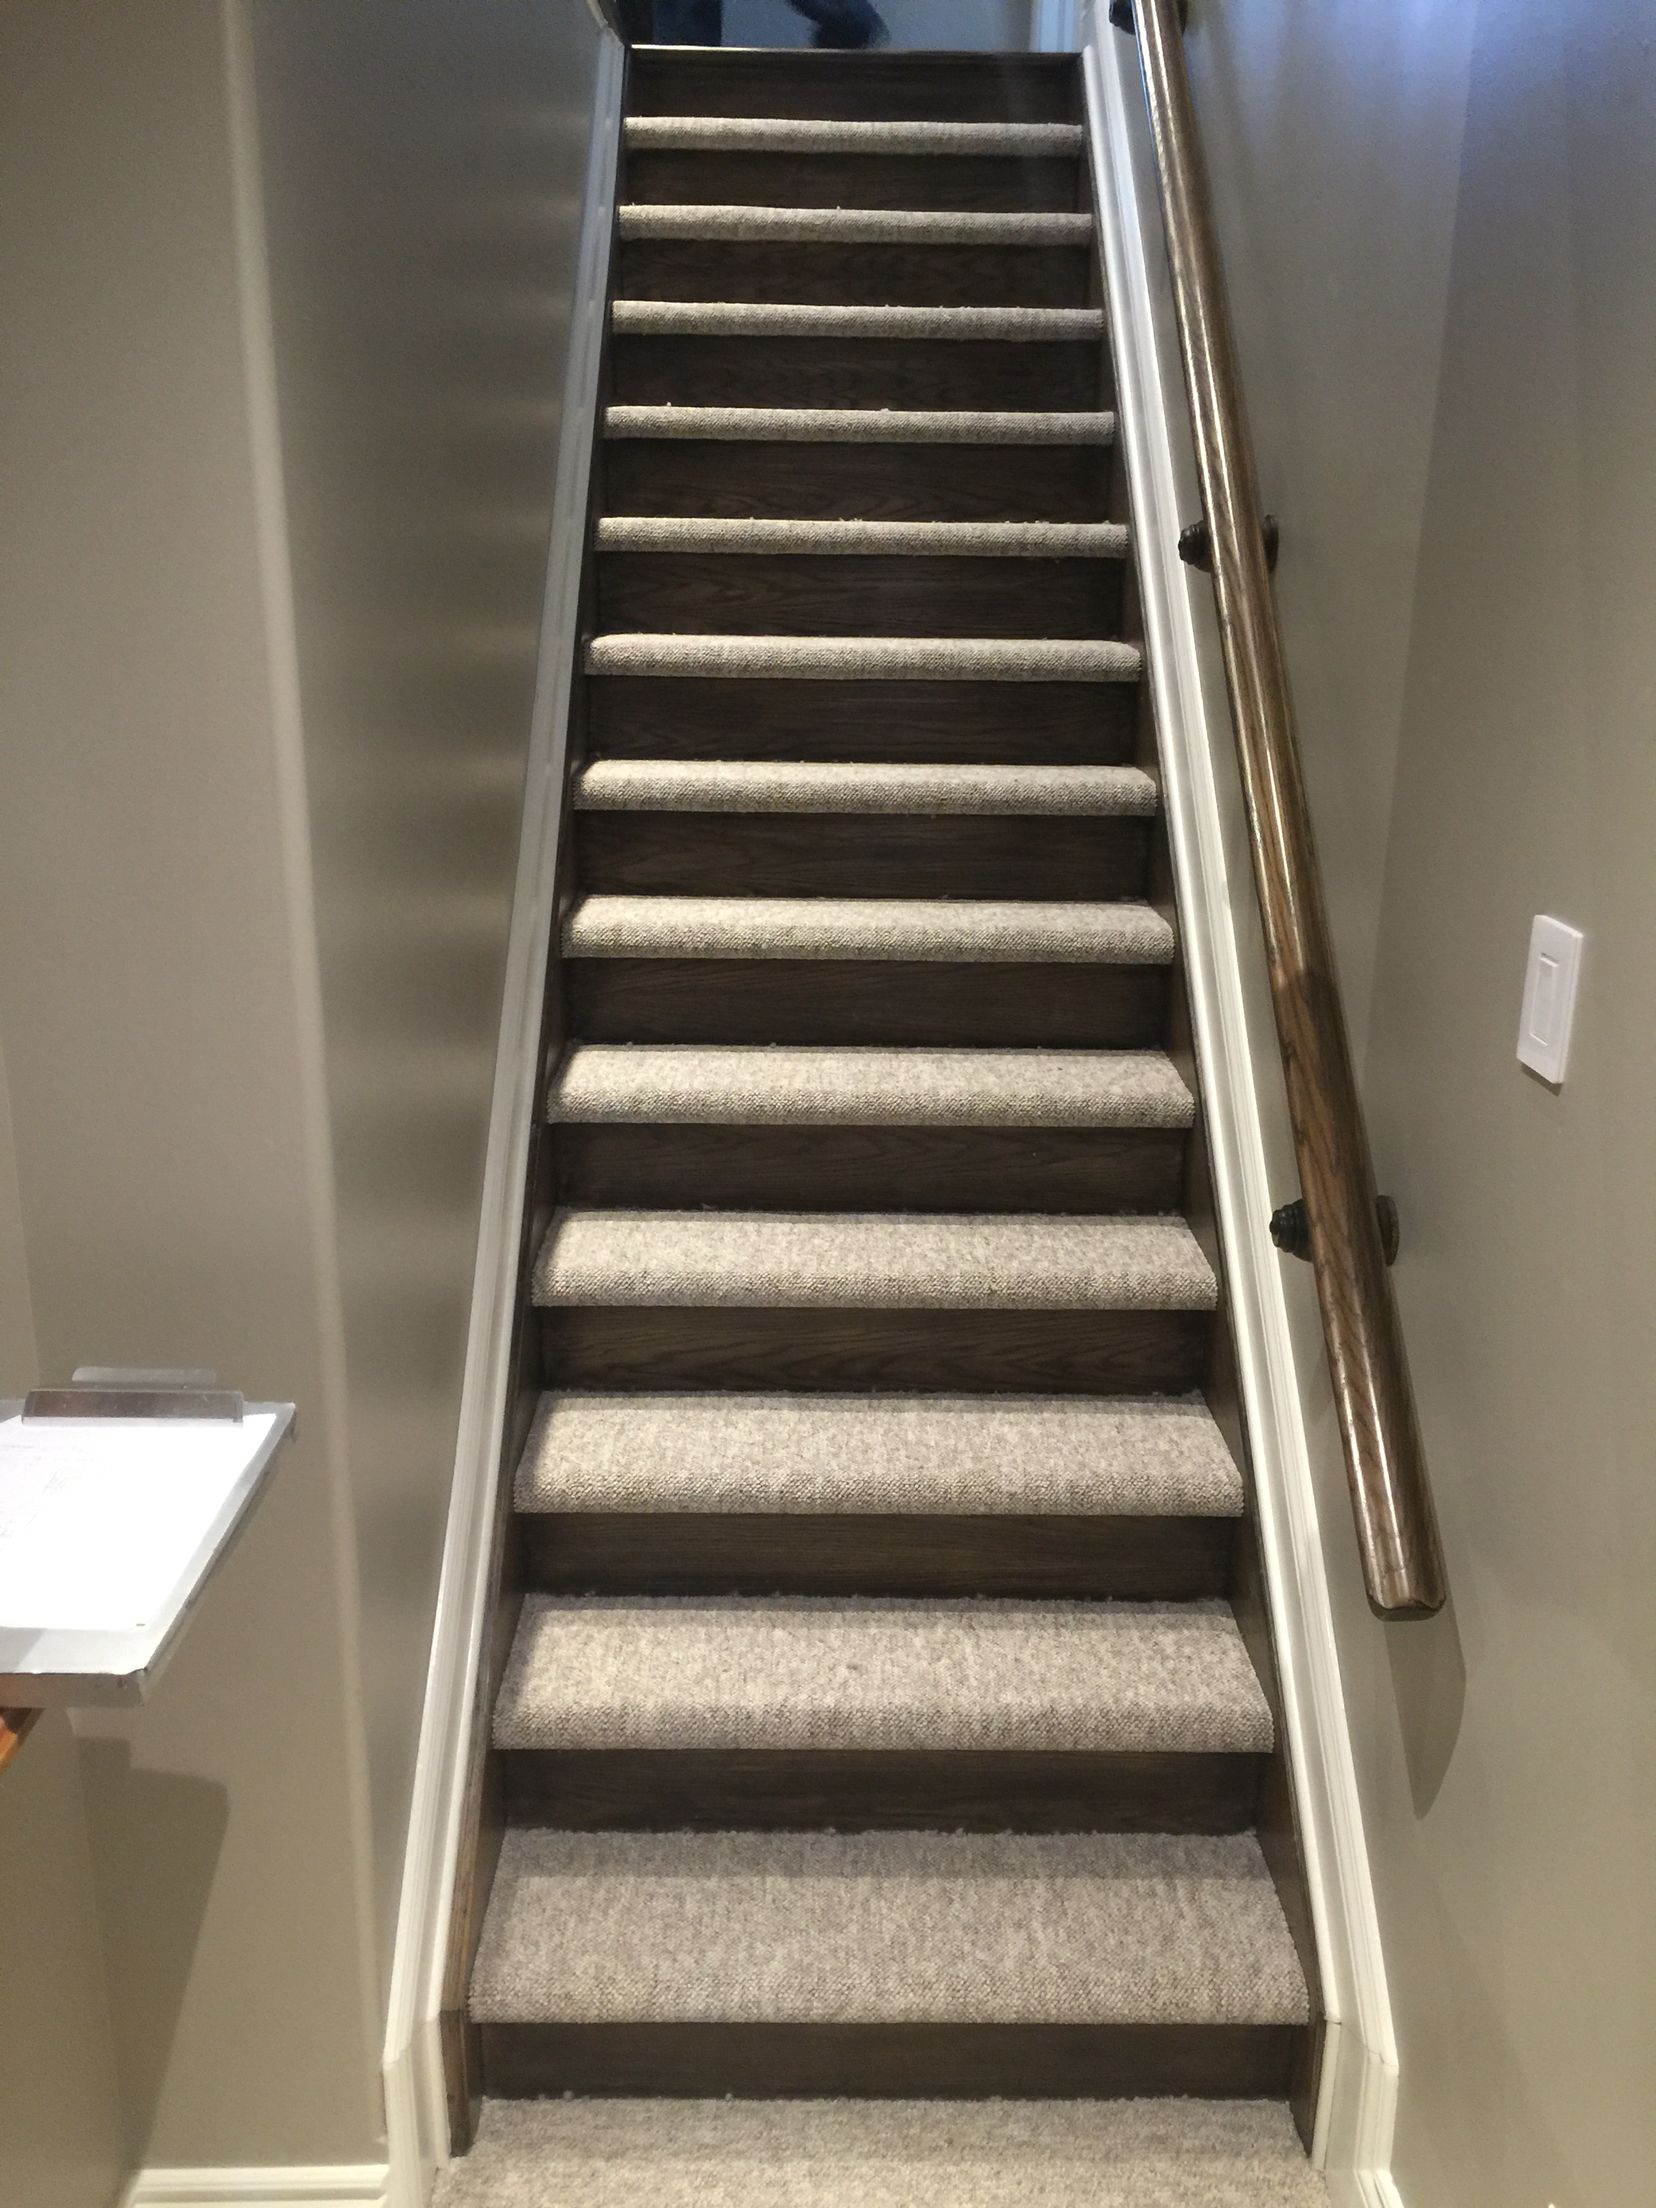 Closed Stairs Carpet And Wood Risers Wood Stairs Carpet Stairs